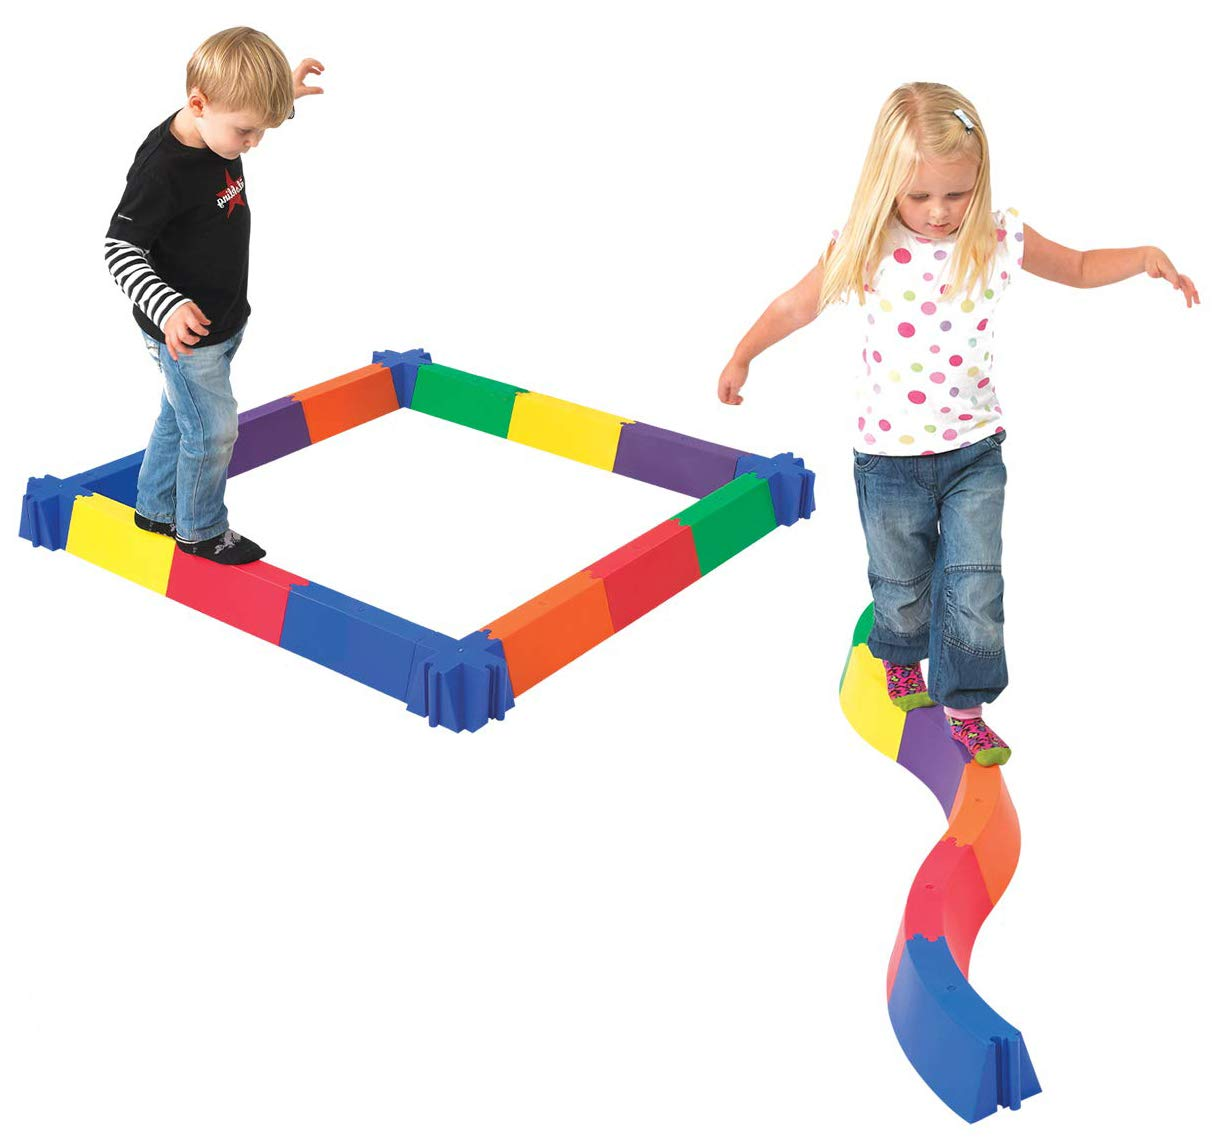 Edx Education Balancing Path - in Home Learning Supplies for Kids Physical Play - 28 Pieces - Indoor and Outdoor - Exercise and Gross Motor Skills - Build Coordination and Balance